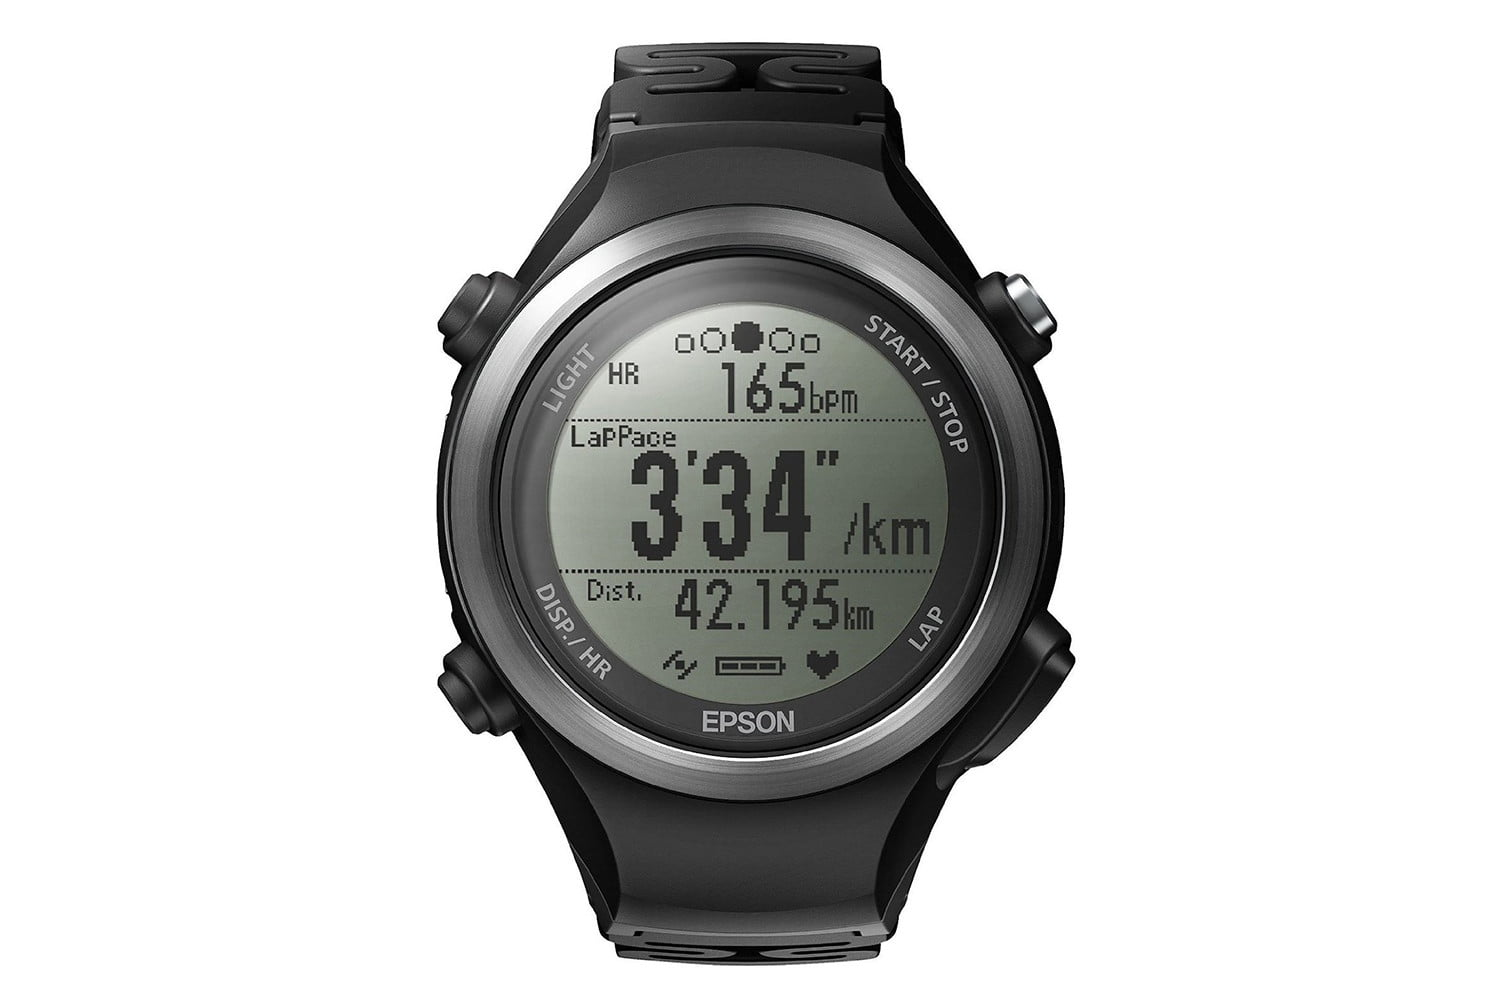 Epson-Runsense-GPS-Watch-SF-810B